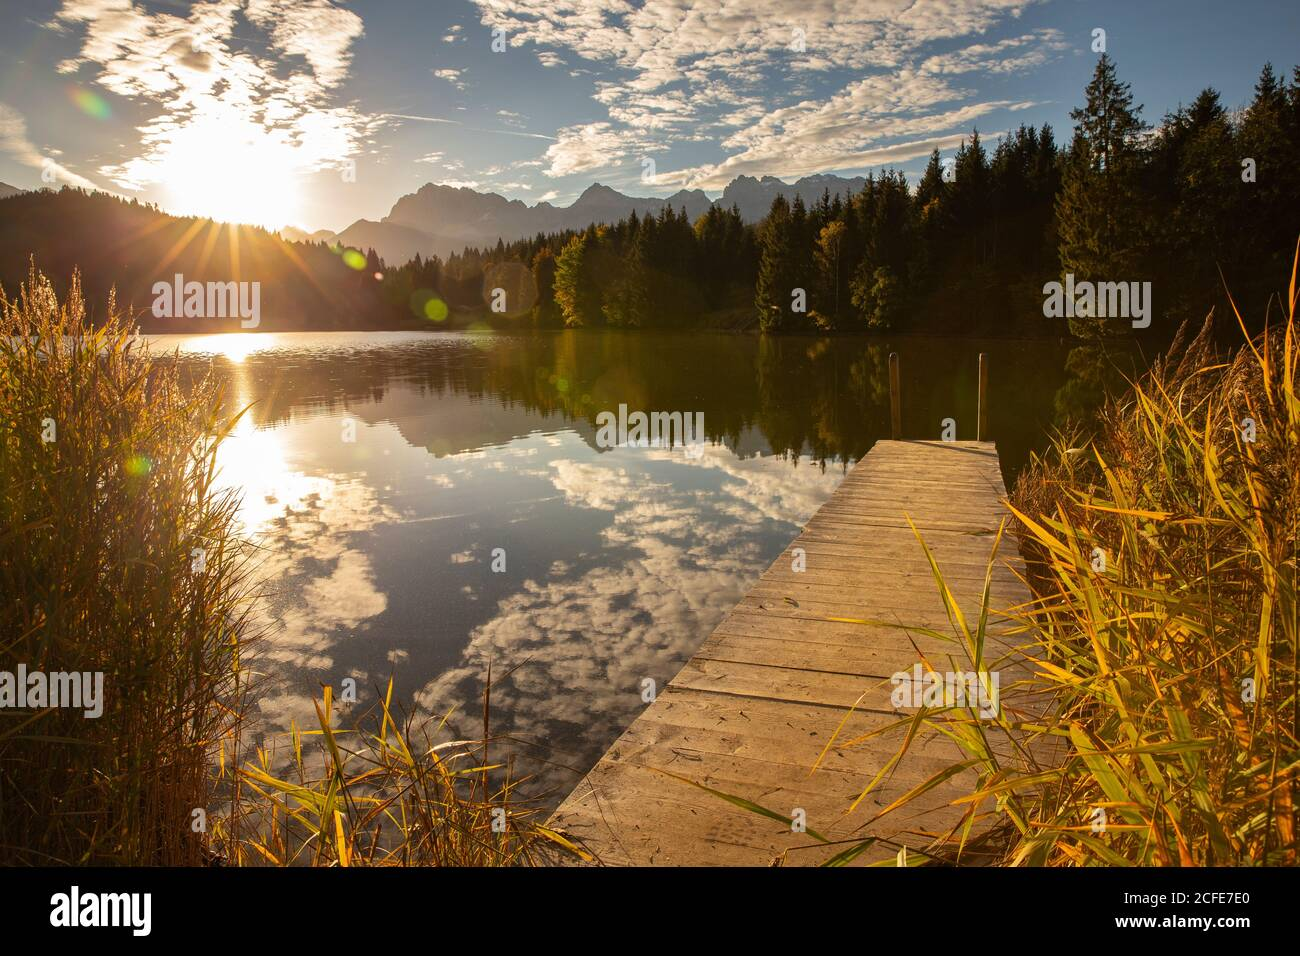 View from Badesteg near Geroldsee towards the Karwendel mountains at sunrise, blue sky, water reflection, sun rays, trees, reeds, clouds, Krün, Stock Photo